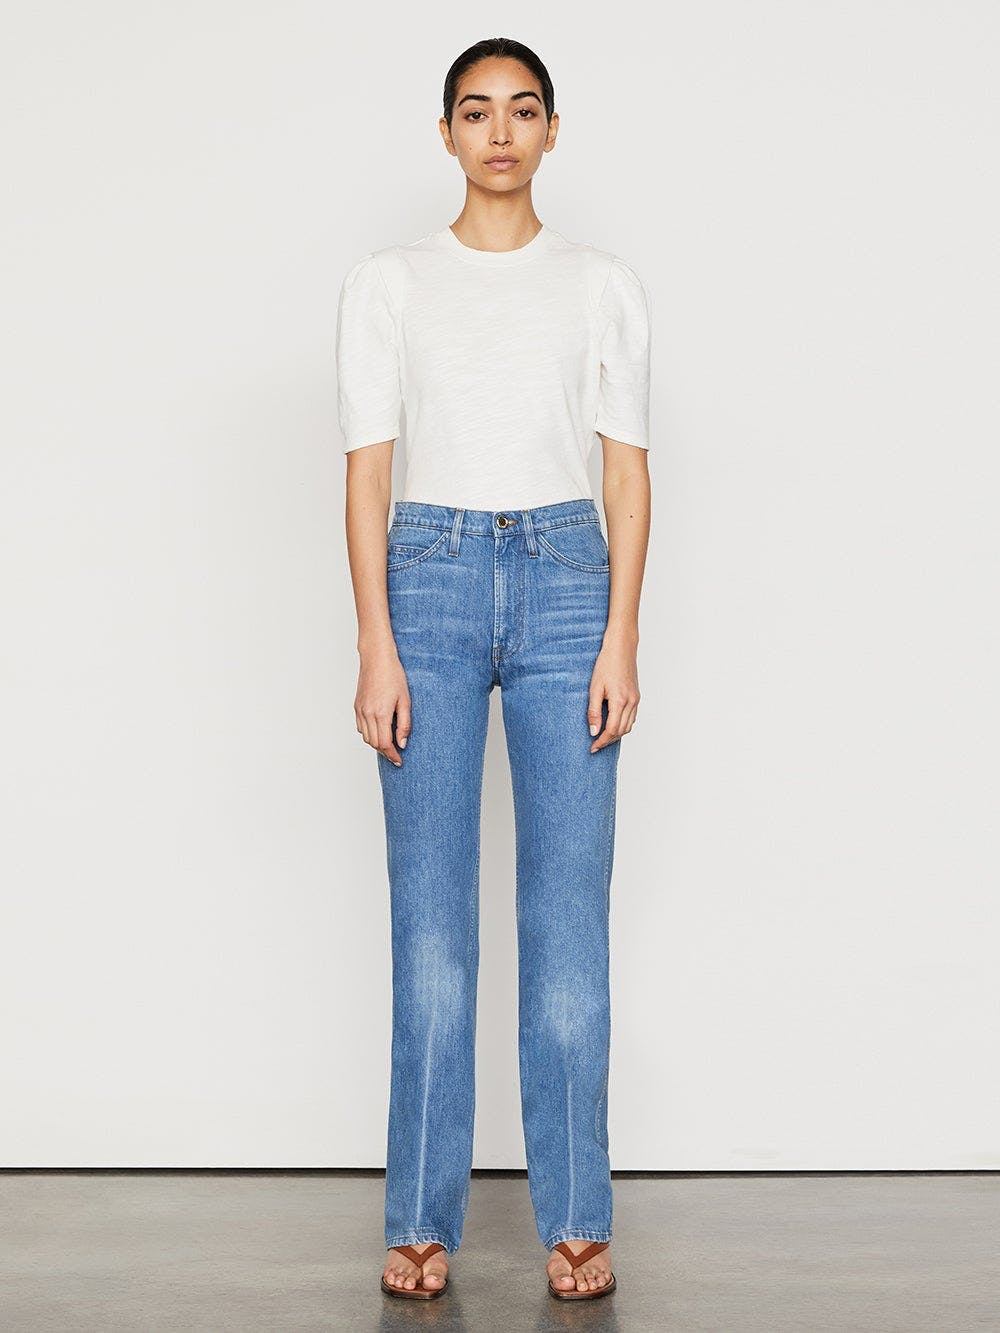 jeans front full body view